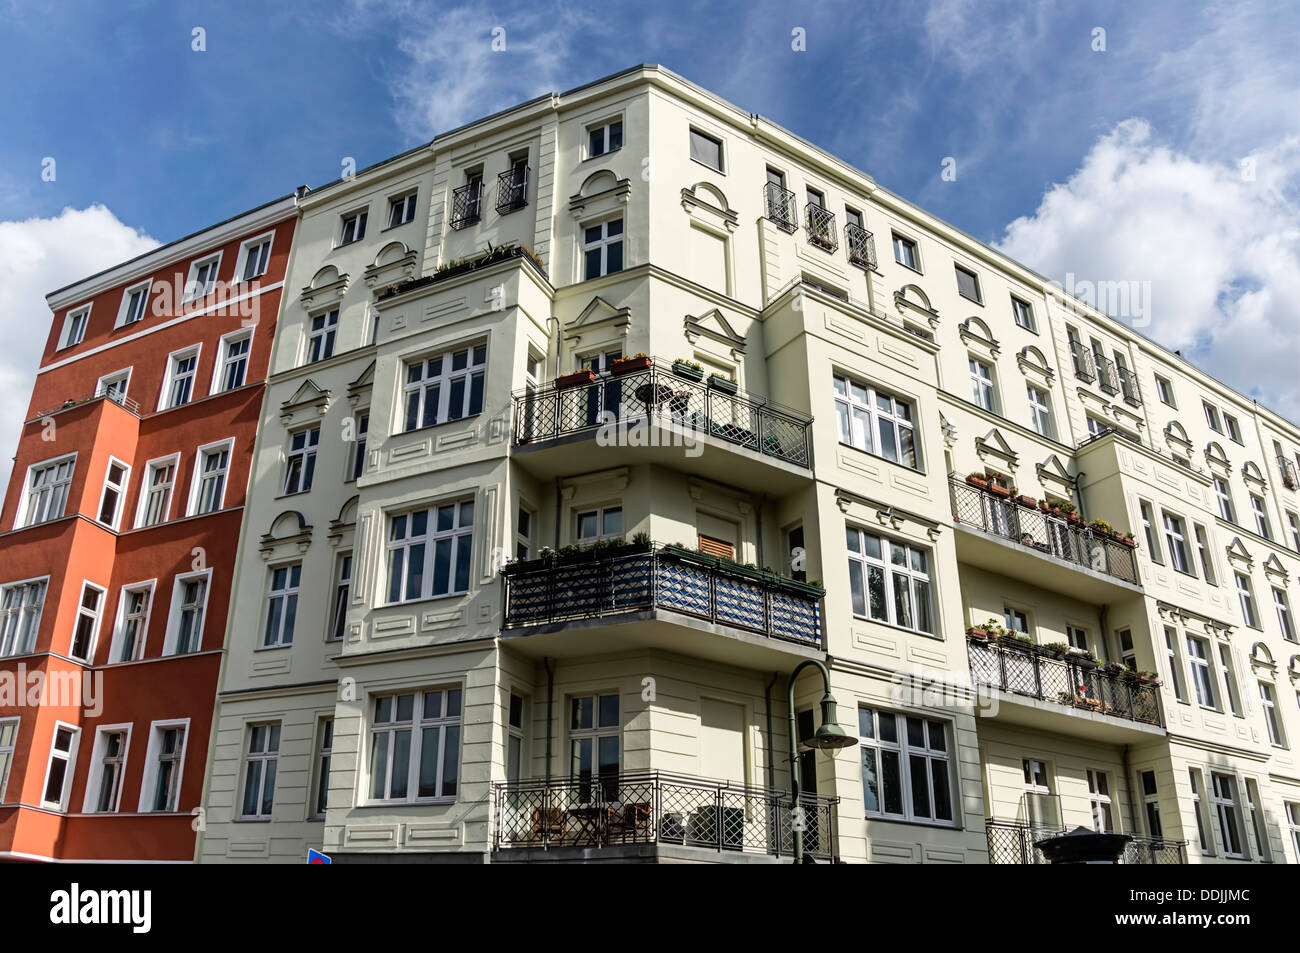 Das Beste Stucco Apartment Stockfotos Stucco Apartment Bilder Alamy In Diesem Monat